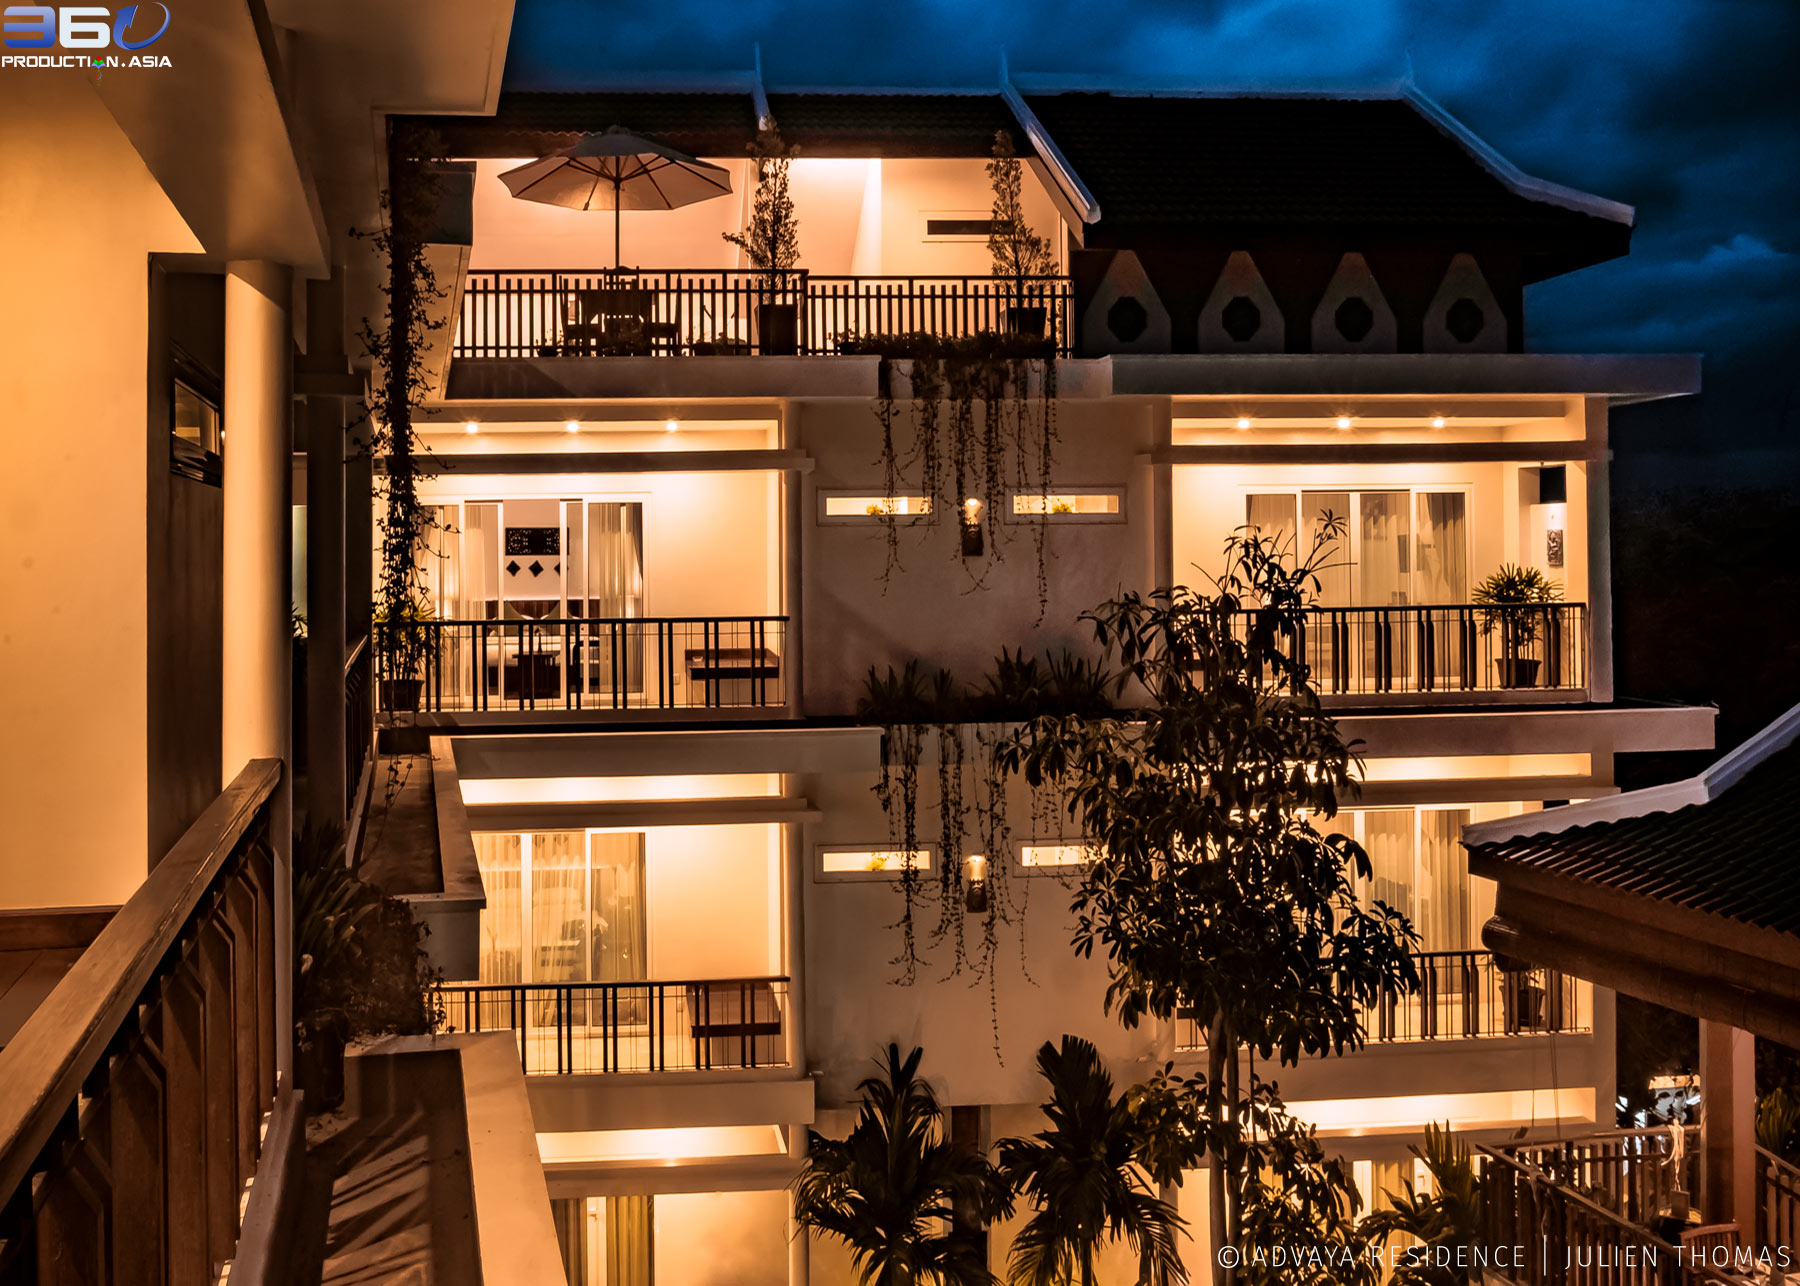 Lighted and luxury hotel at night with the private balconies and rooms for the guests in the high standing Advaya Residence in Siem Reap - Cambodia.